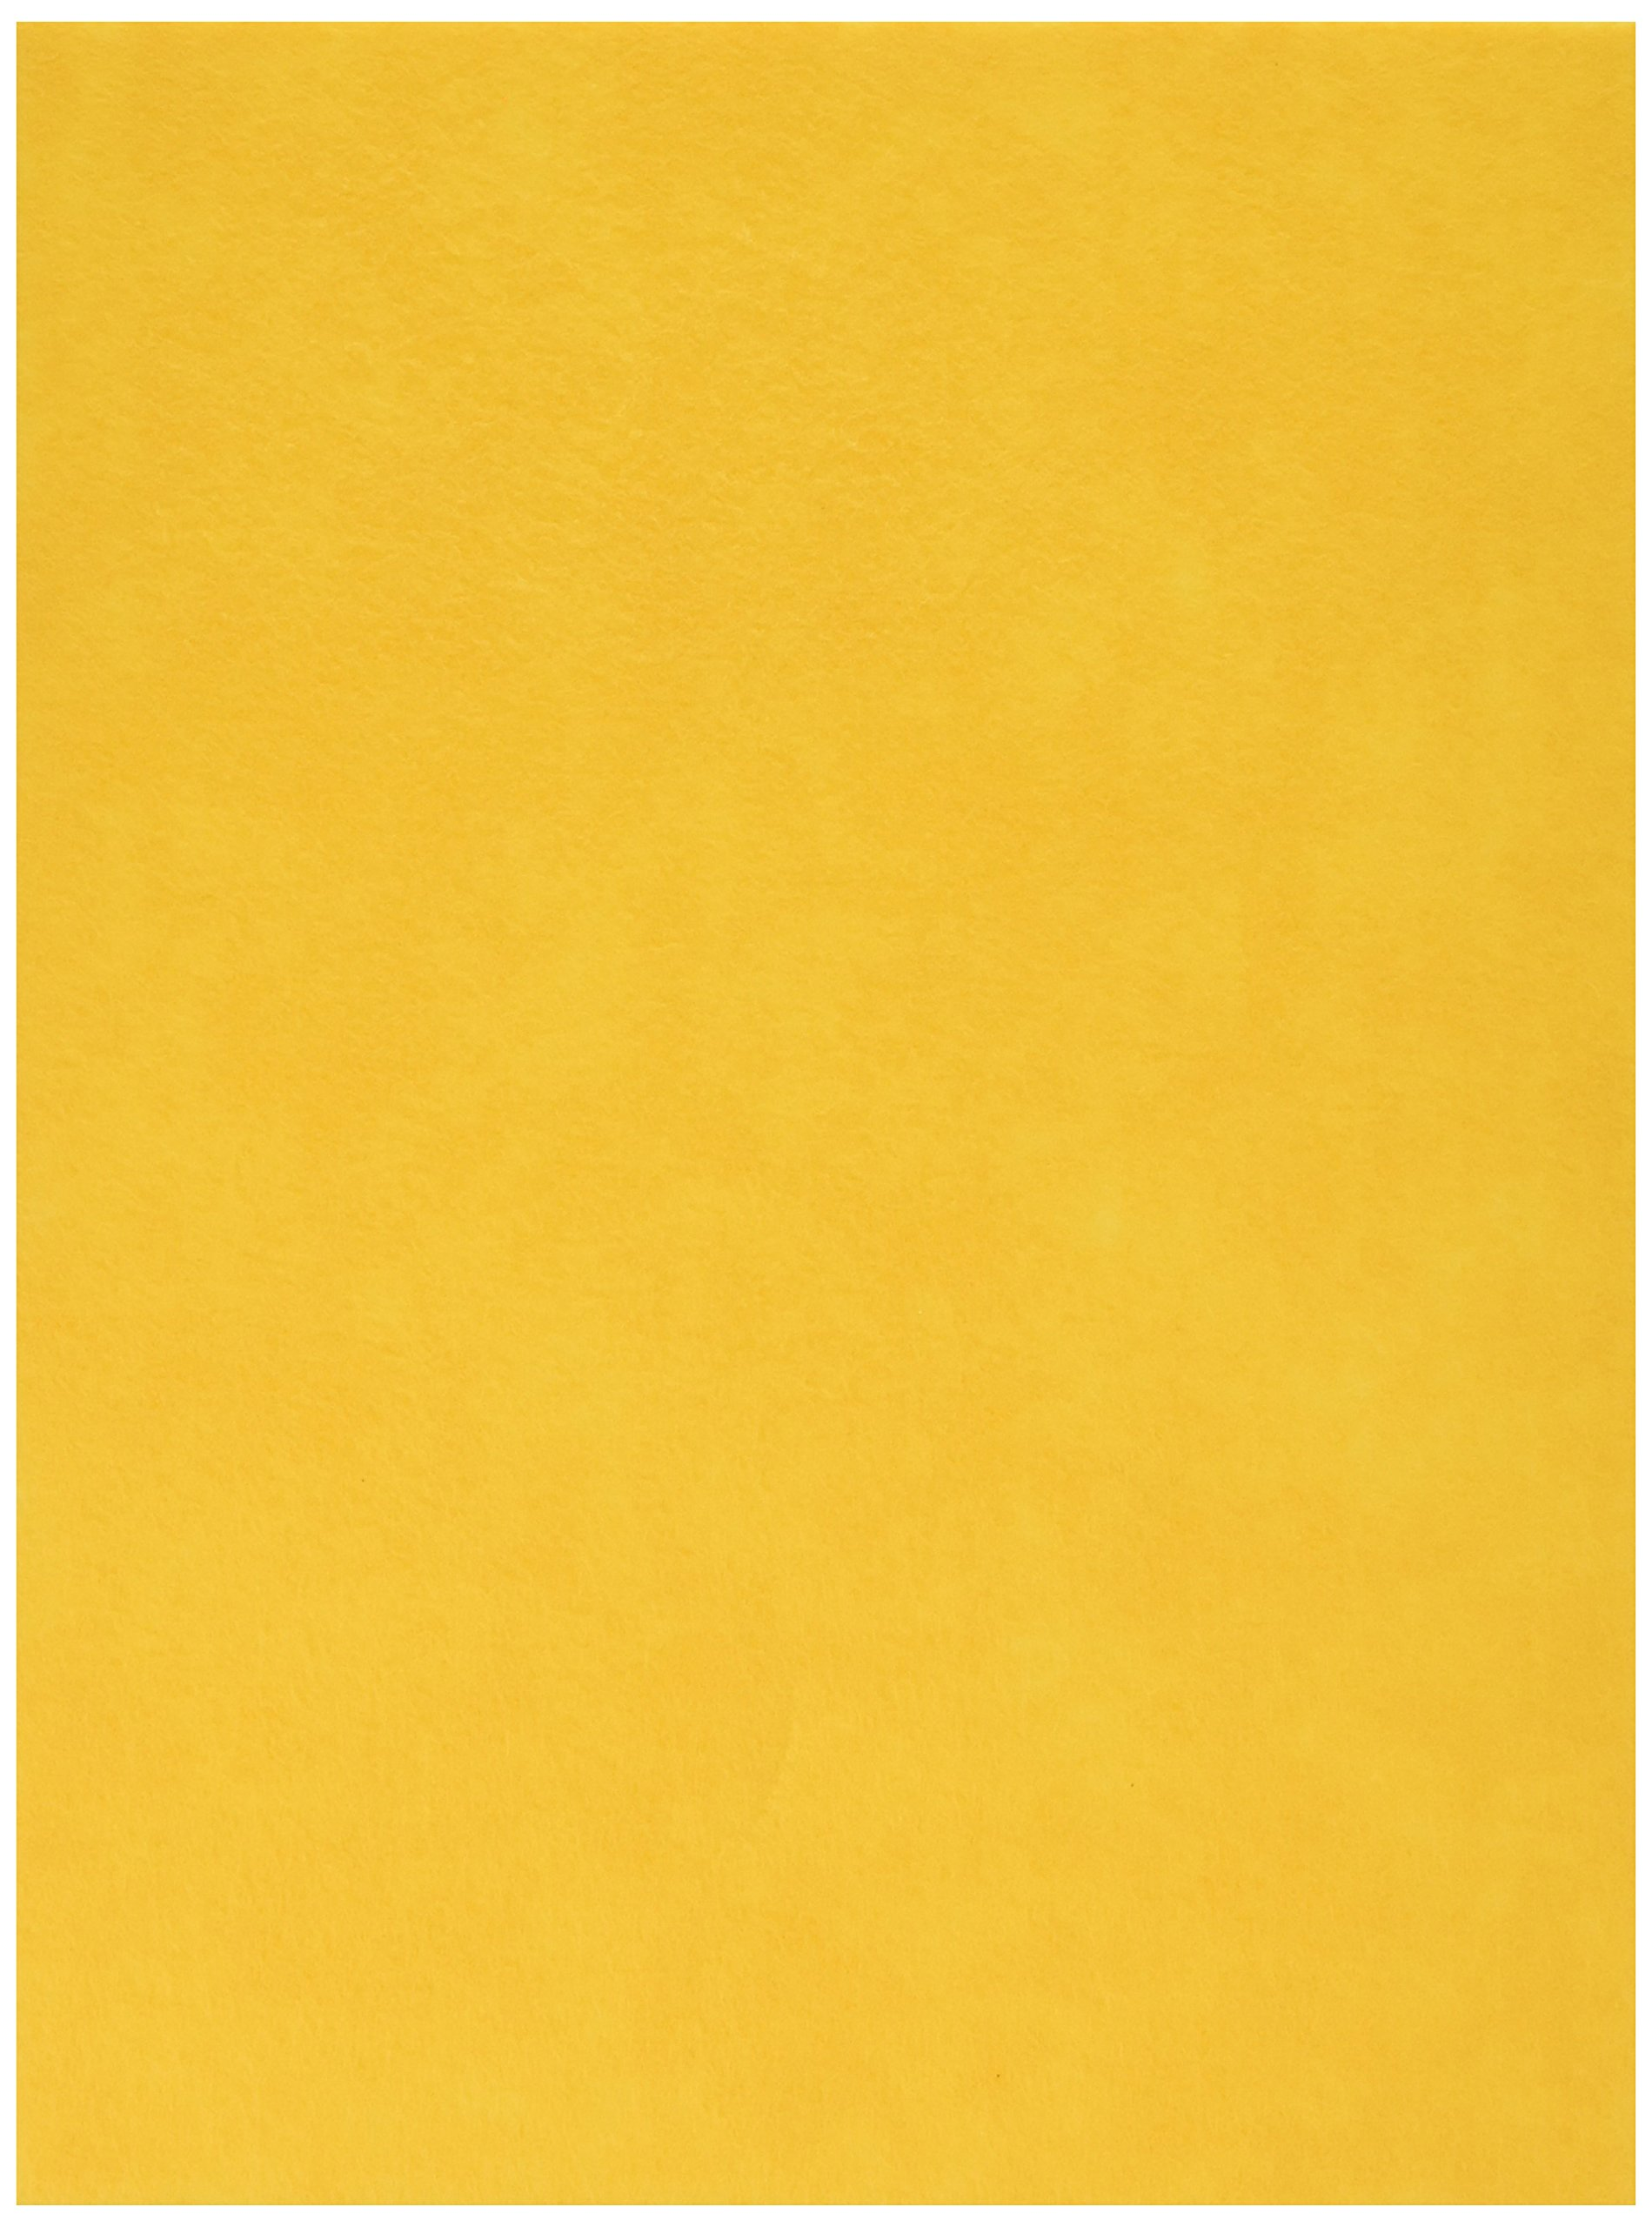 The New Image Group Stick It Felt 9''X12''-Yellow, Pack of 6